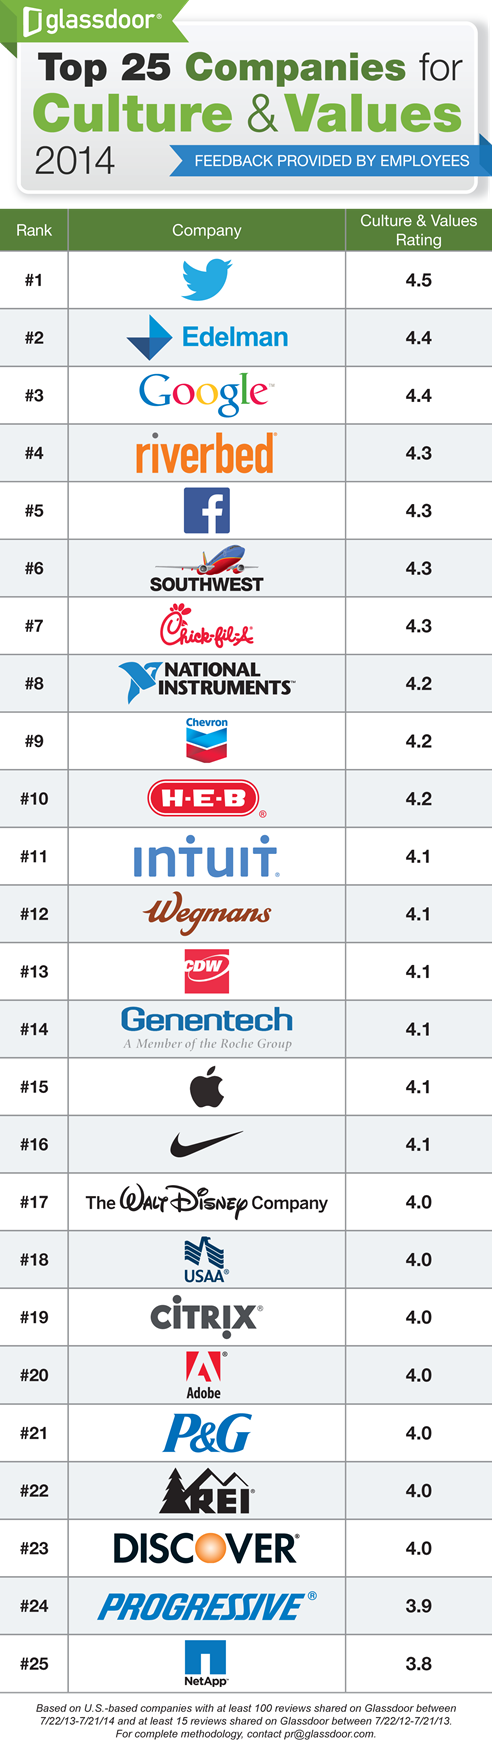 twitter top company for culture and values